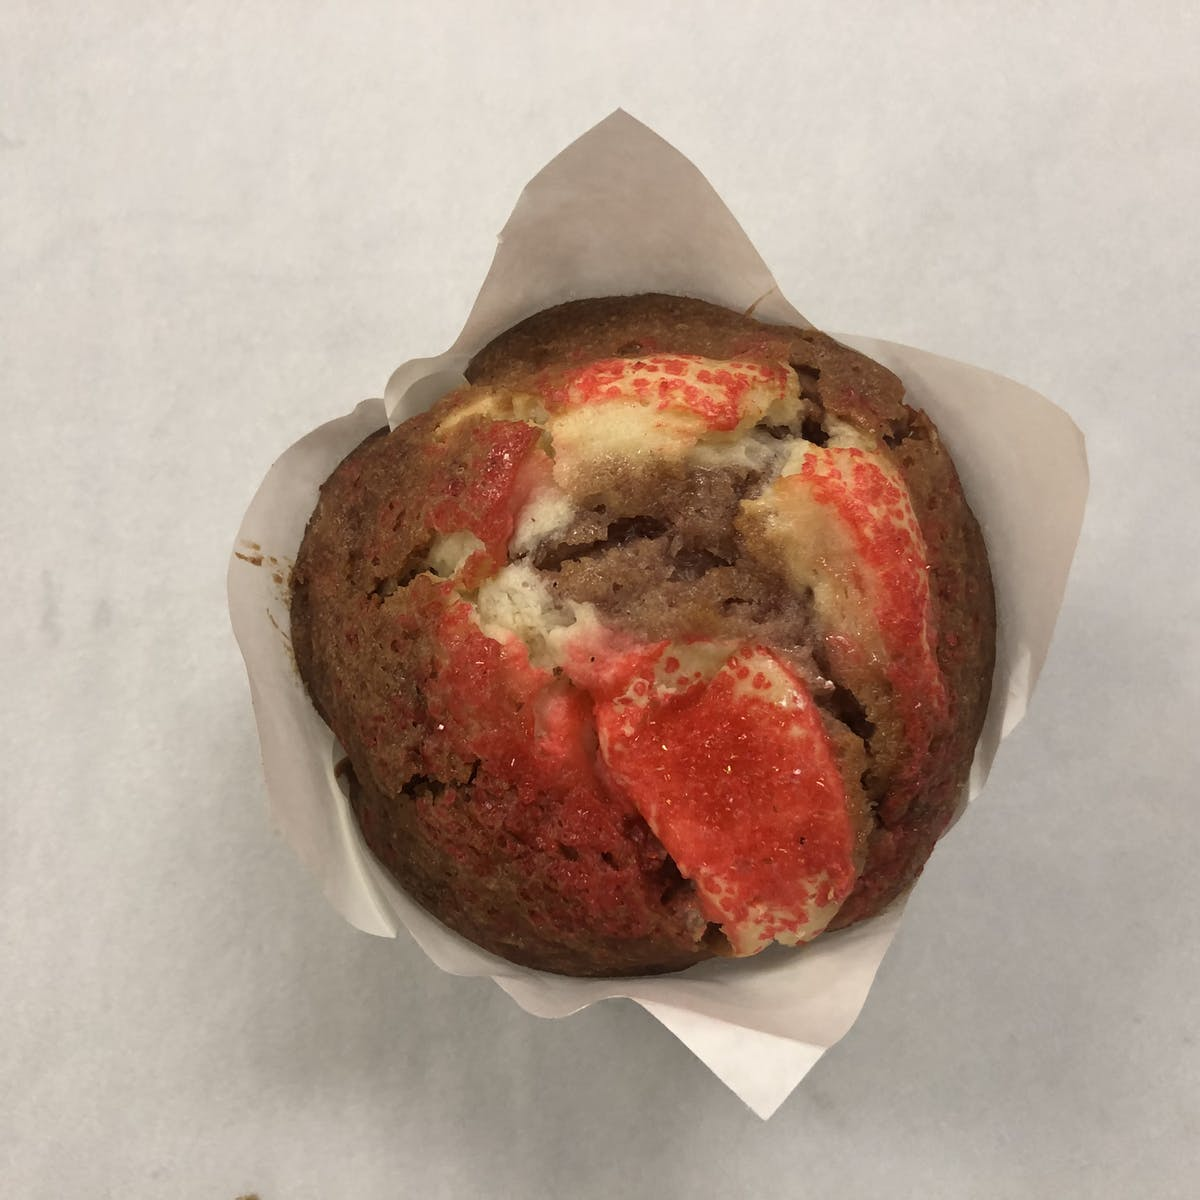 a red muffin